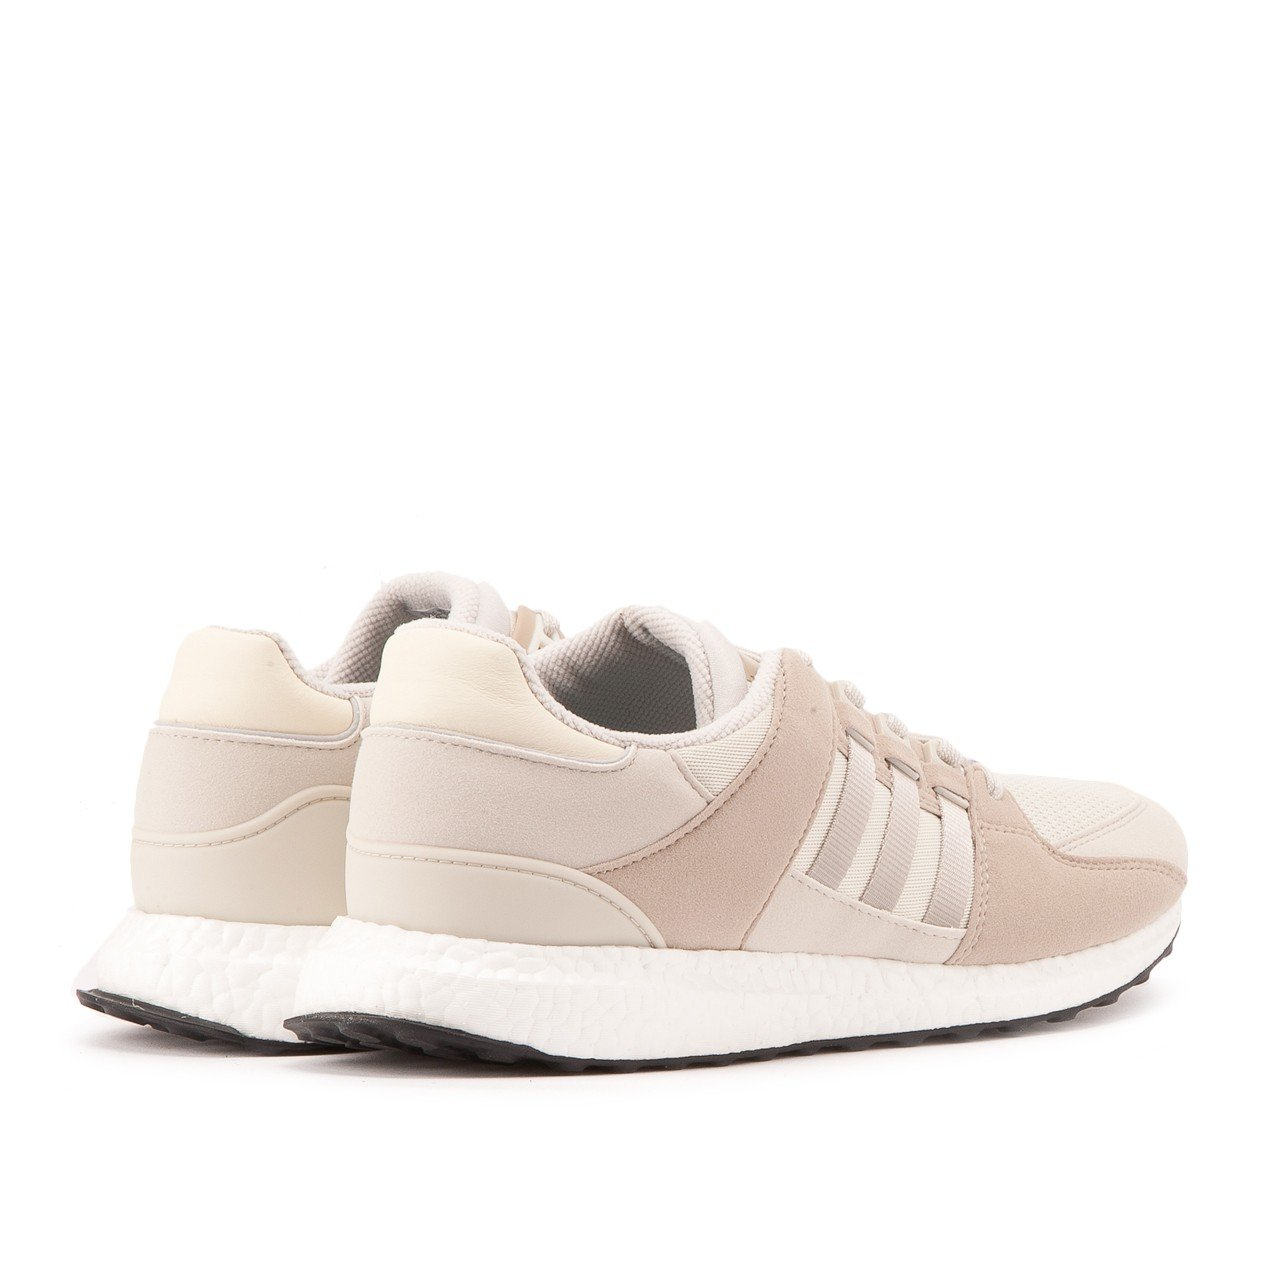 Ultra Homme Support Adidasbb1239Eqt Ultra Homme Homme Ultra Support Ultra Adidasbb1239Eqt Support Adidasbb1239Eqt Adidasbb1239Eqt Support wXuTOZPikl